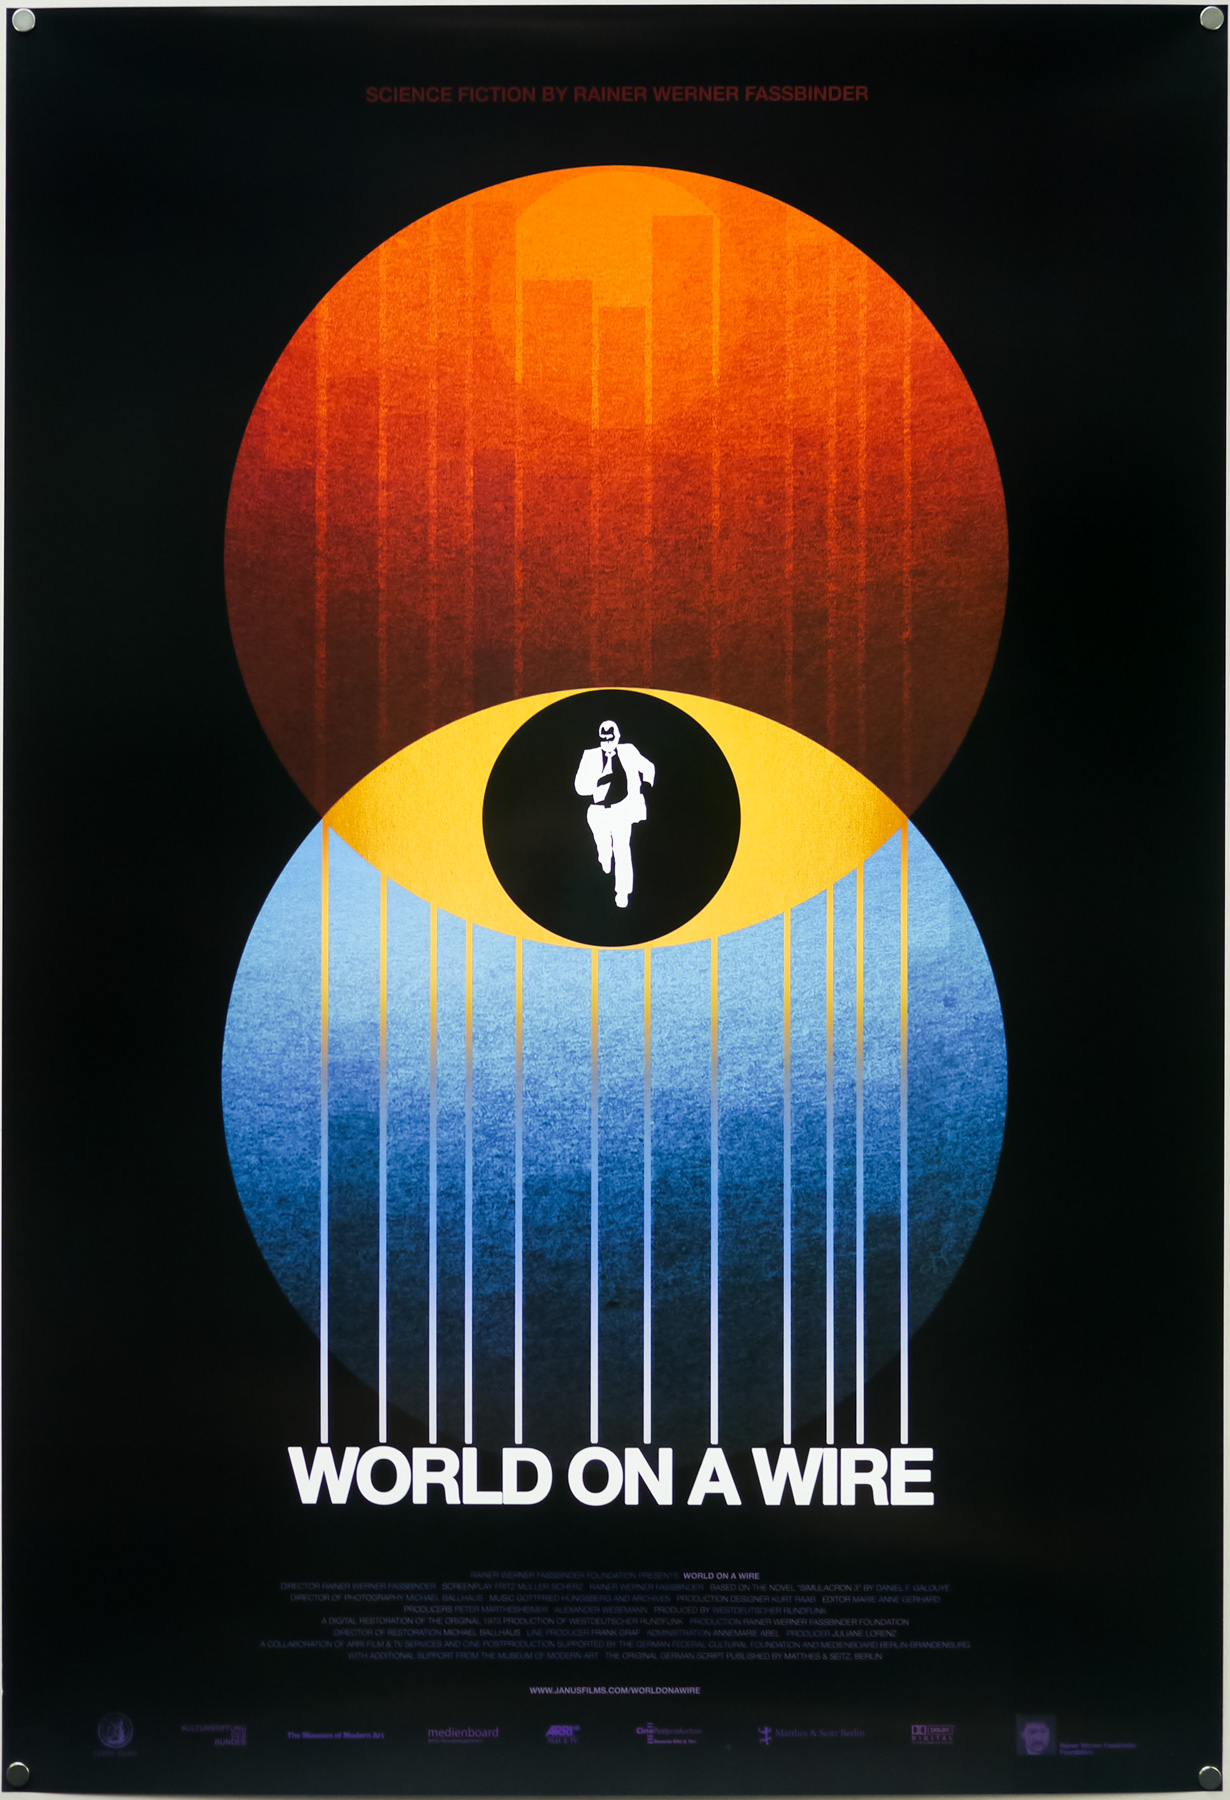 The World on a Wire poster for Janus Films' re-release of the film in 2011, by Sam's Myth